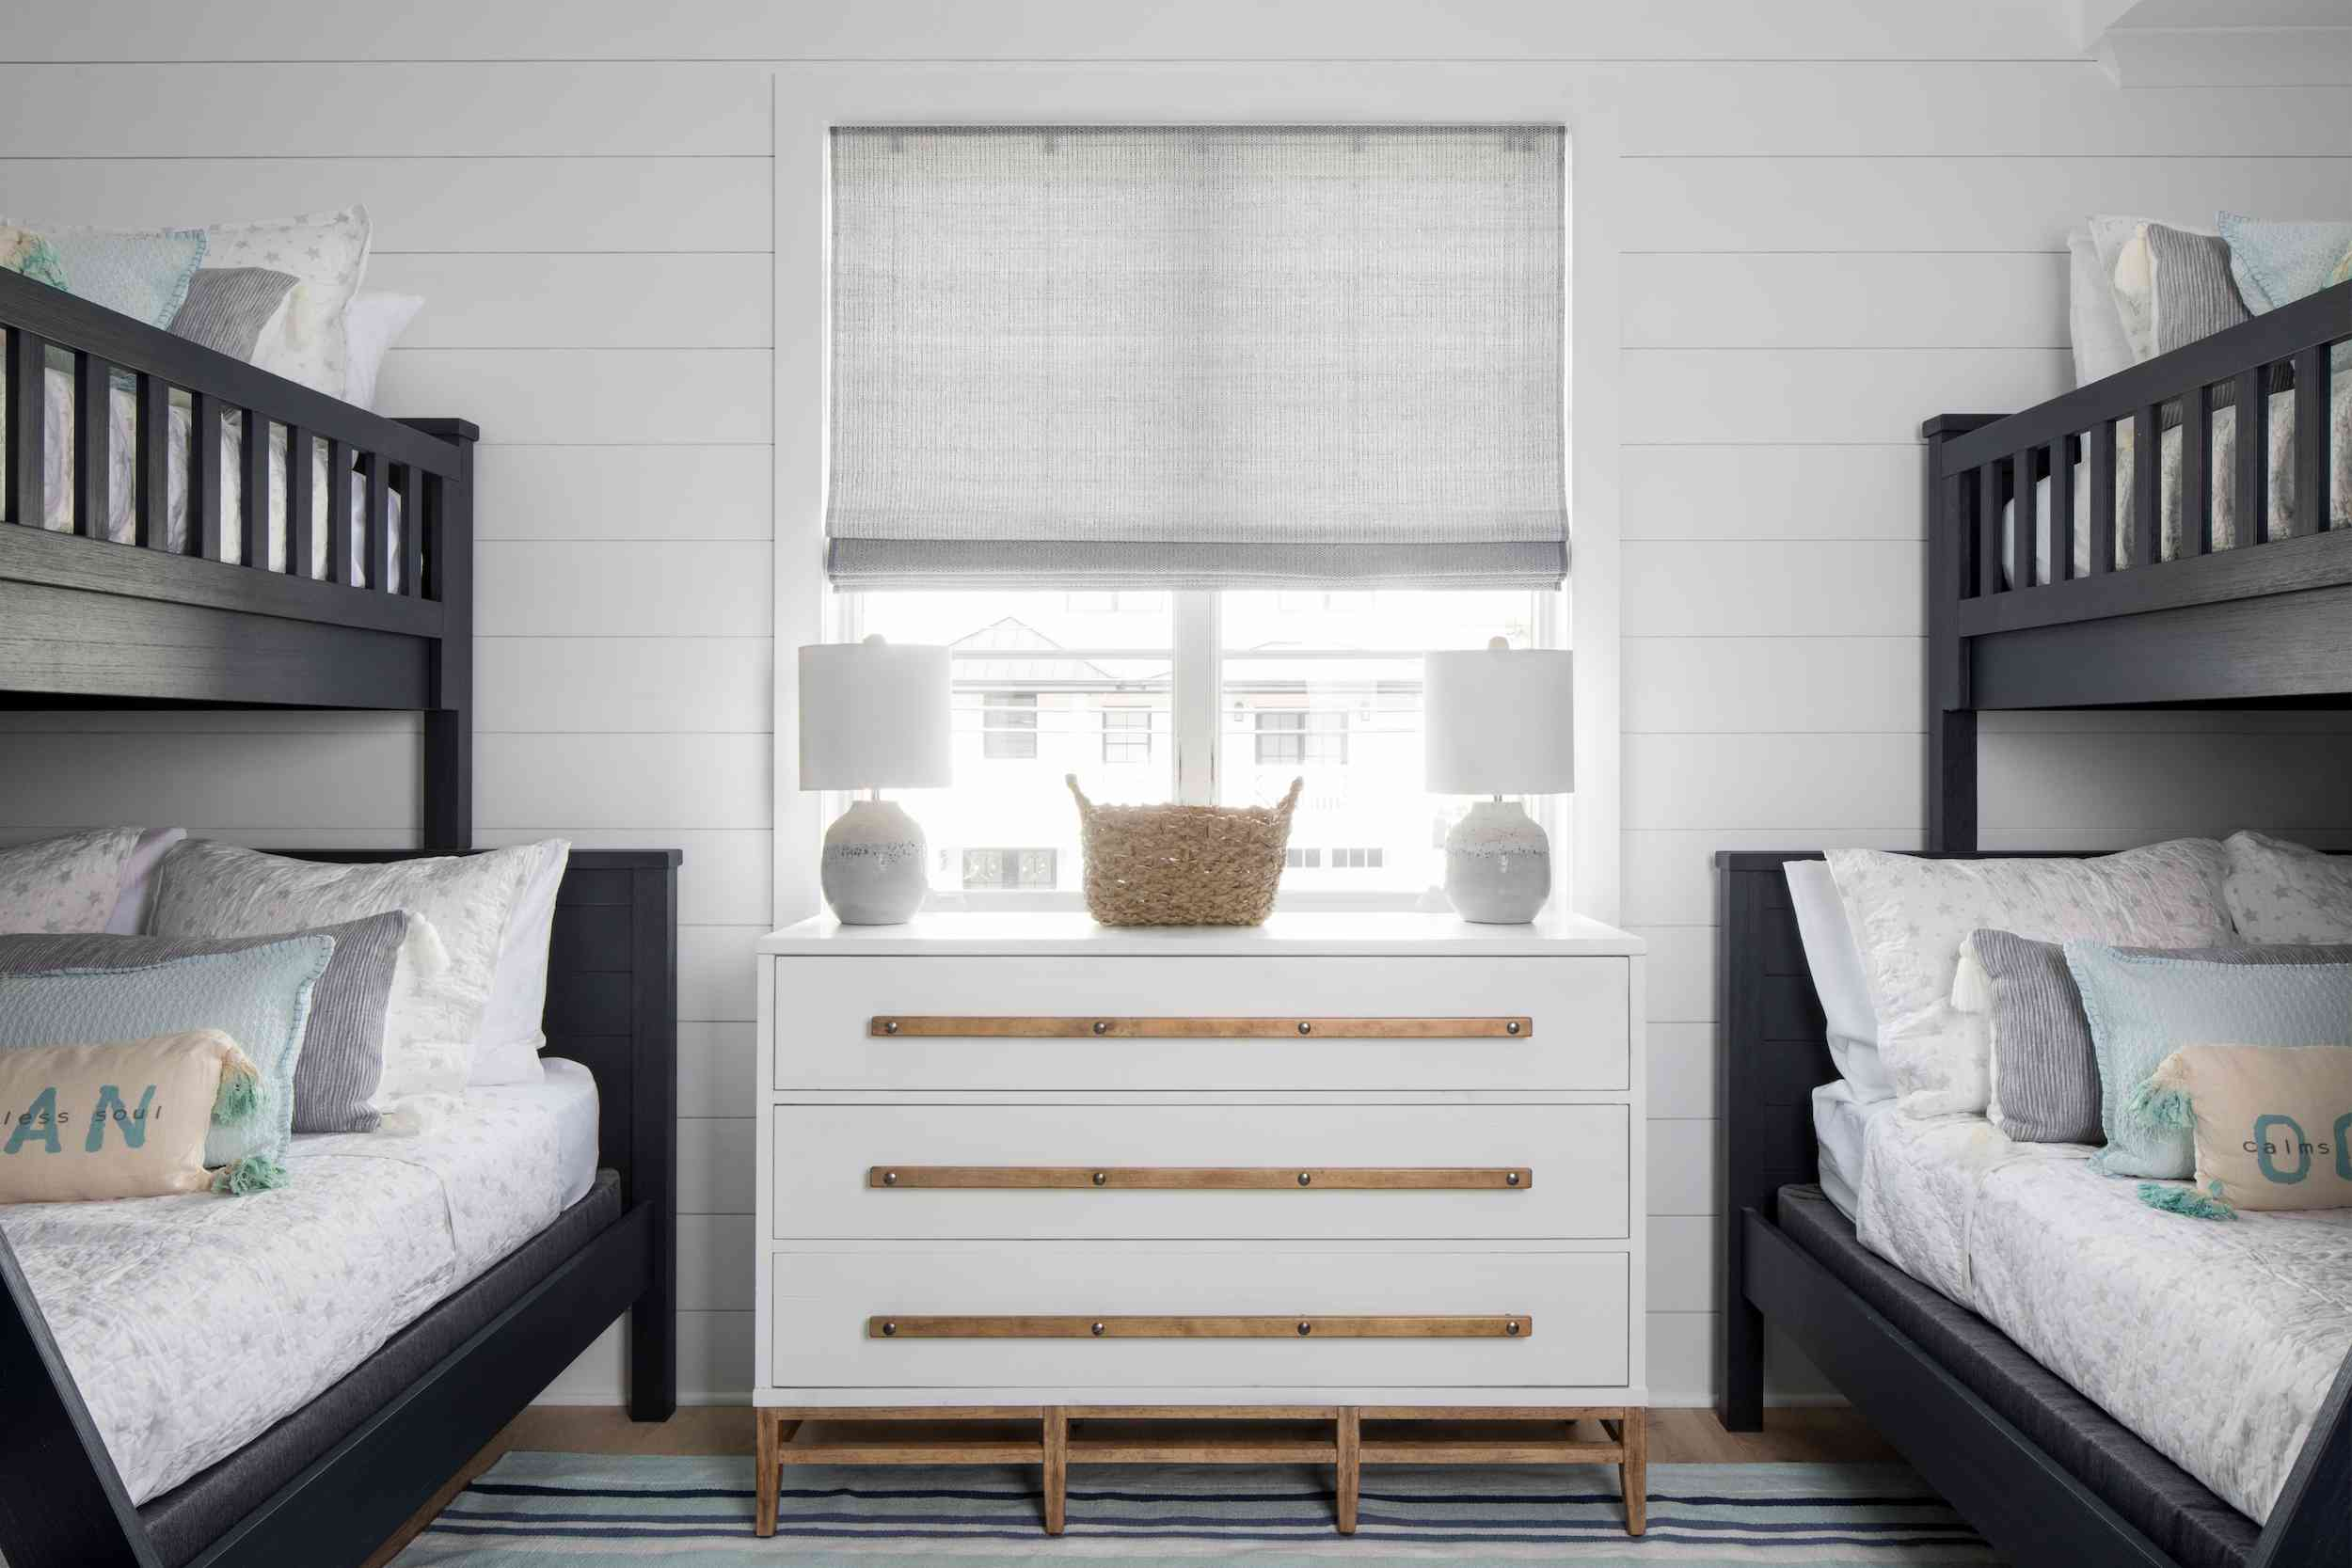 Paneled room with bunk beds